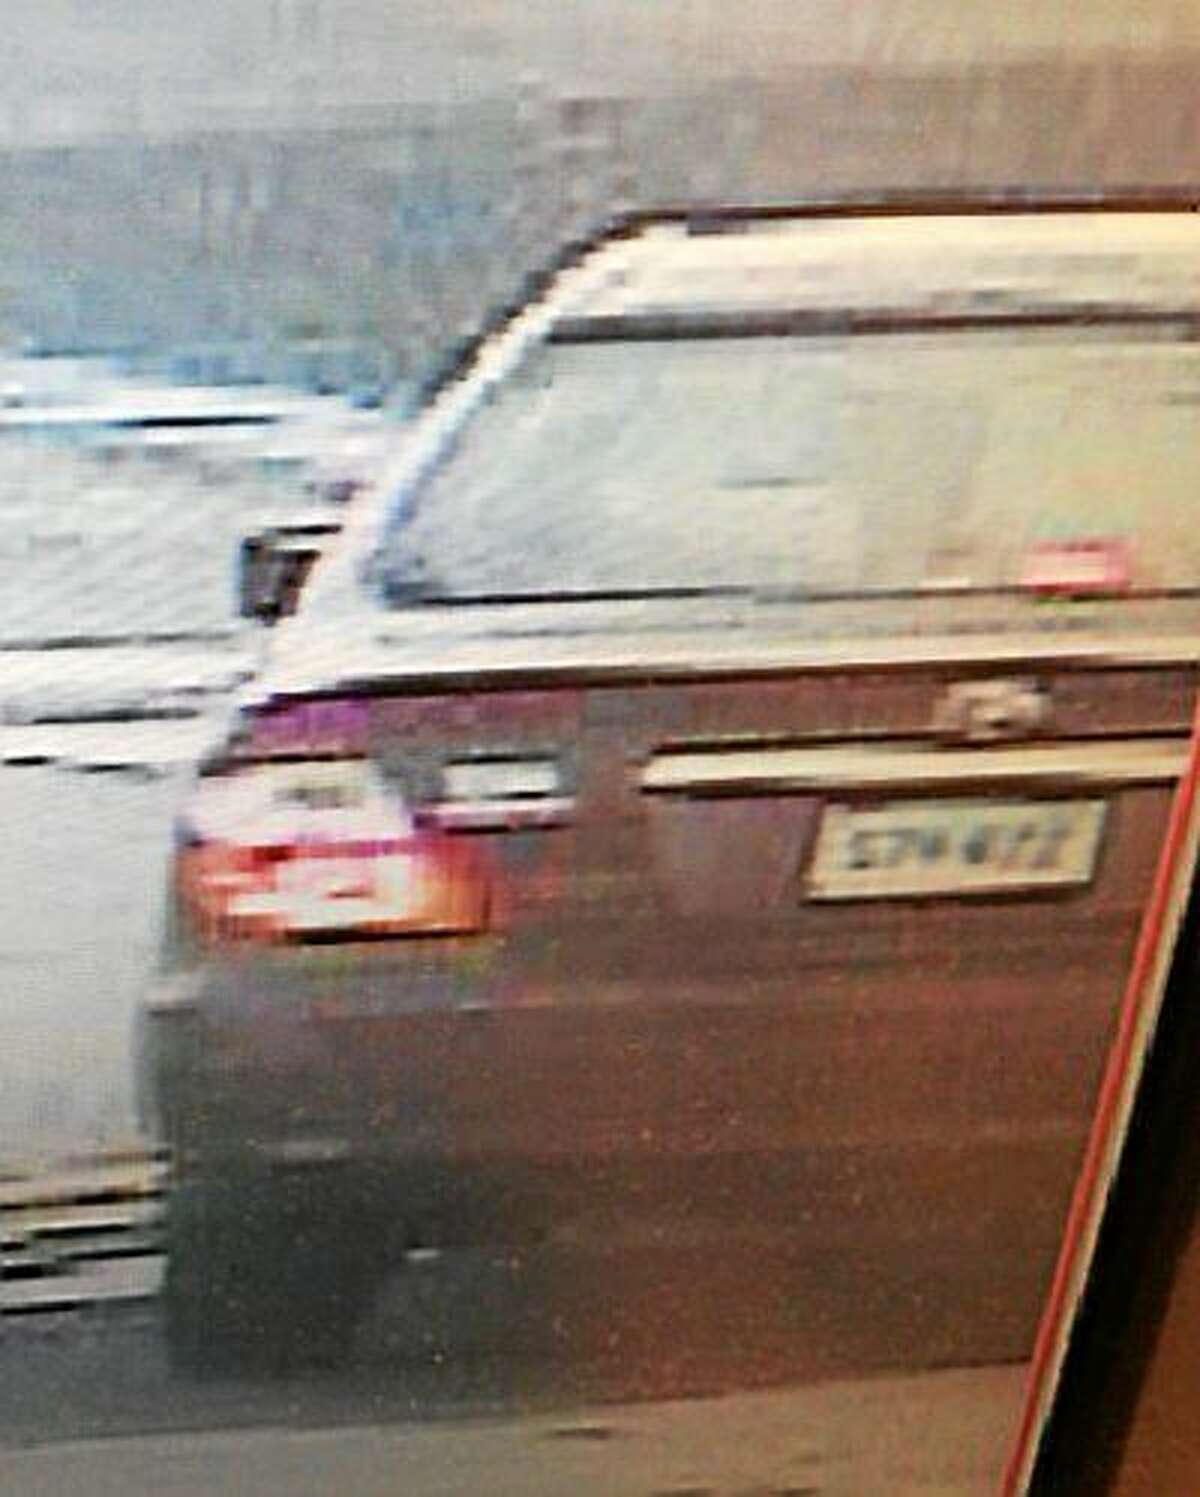 Police say they are looking for information on the operator of this vehicle.